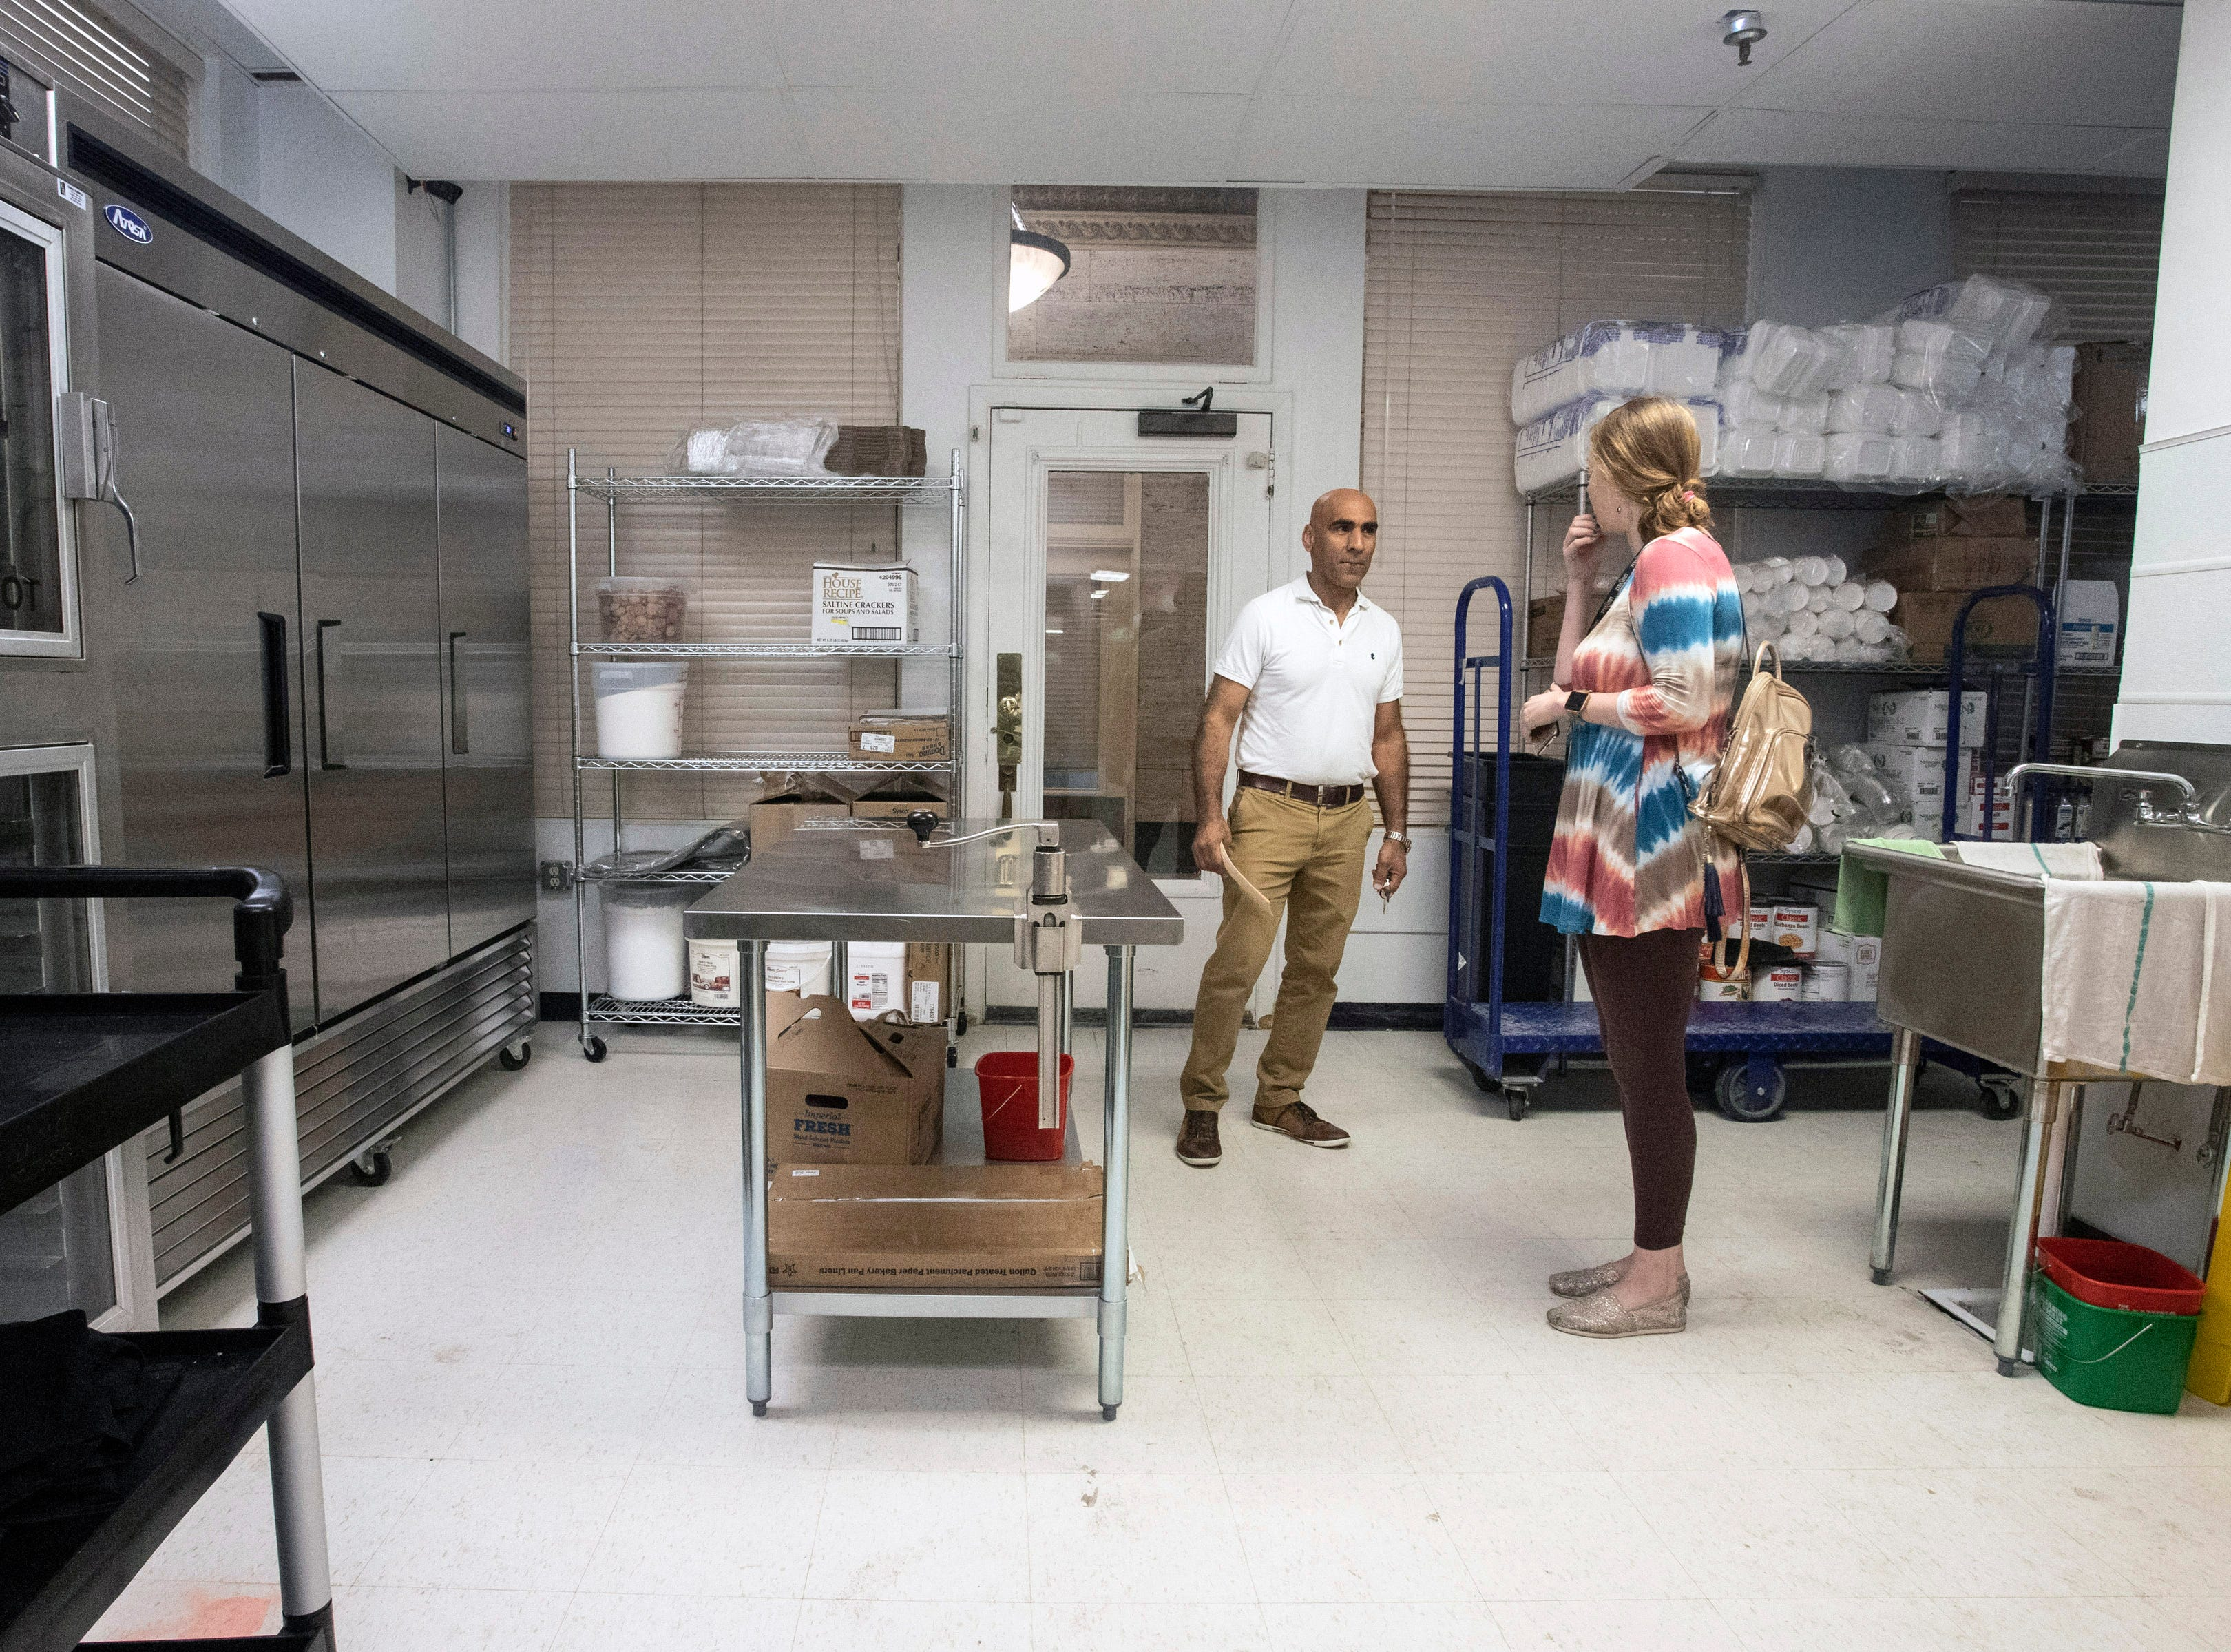 Superior Market & Deli owner Abdul Alshawi shows off the kitchen in his new 5,400-square-foot New York-style bodega at Third & Broadway. 5/10/19